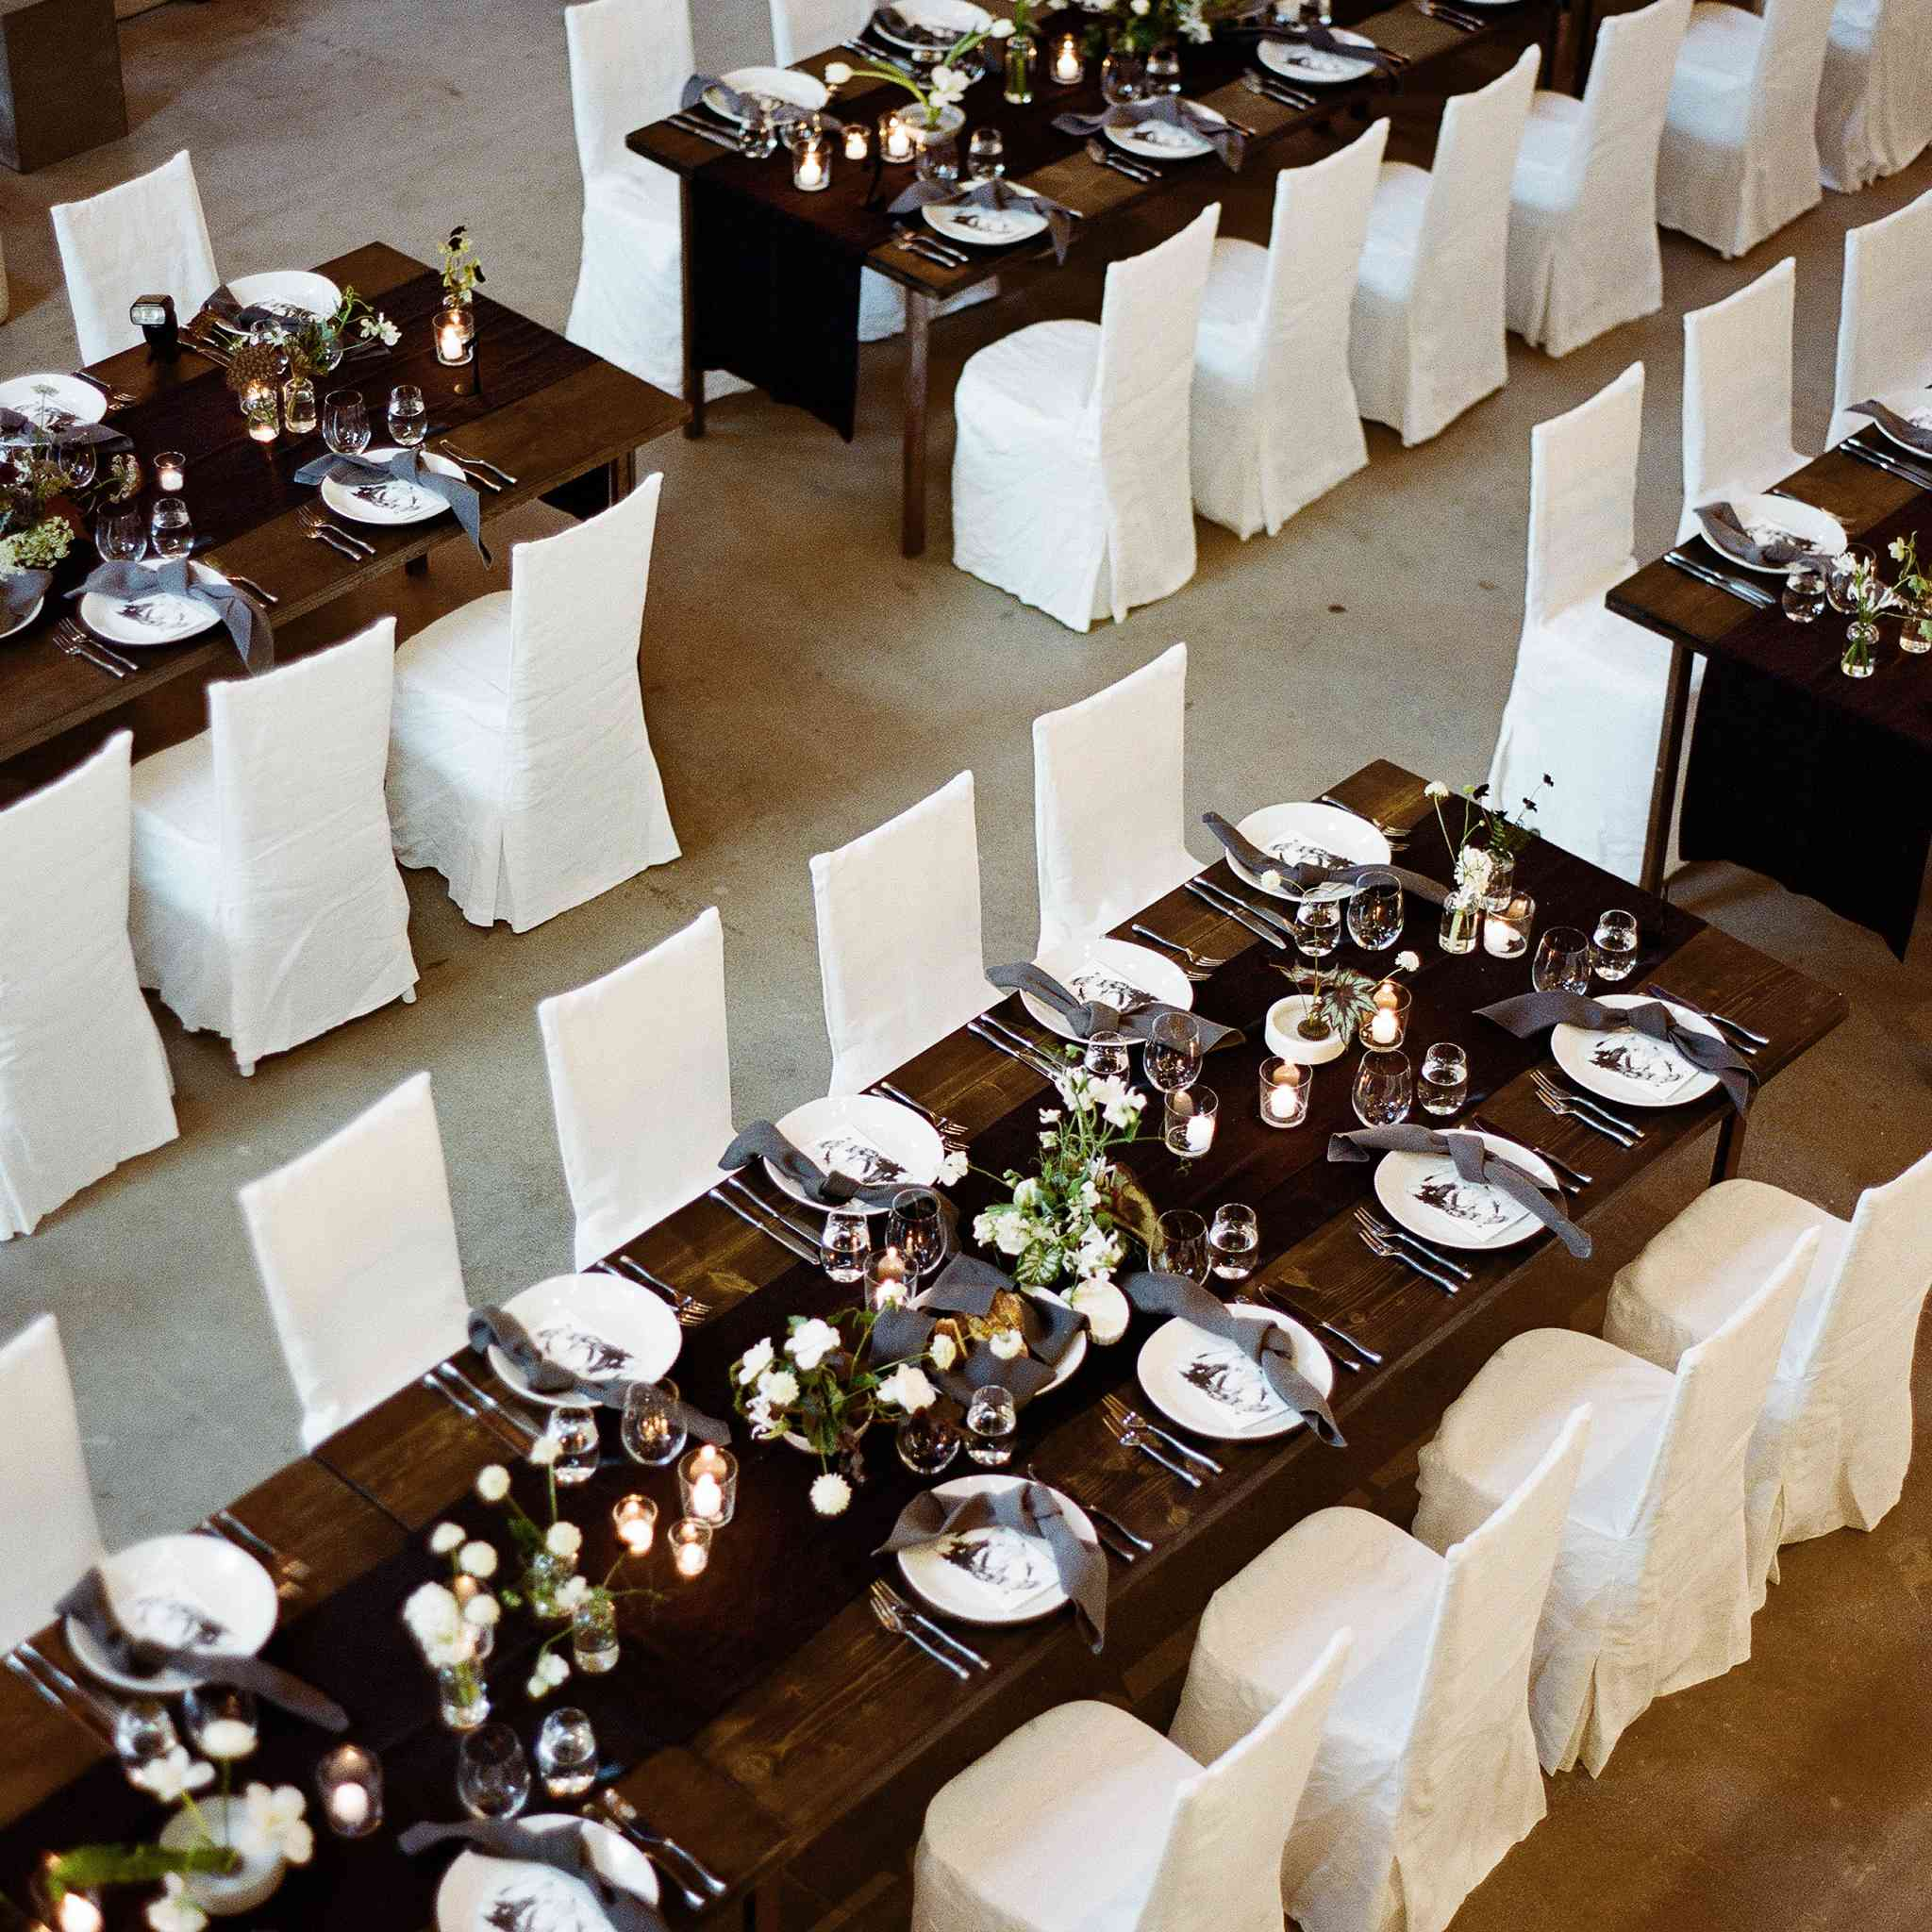 <p>dark wood tables with white chairs</p><br><br>